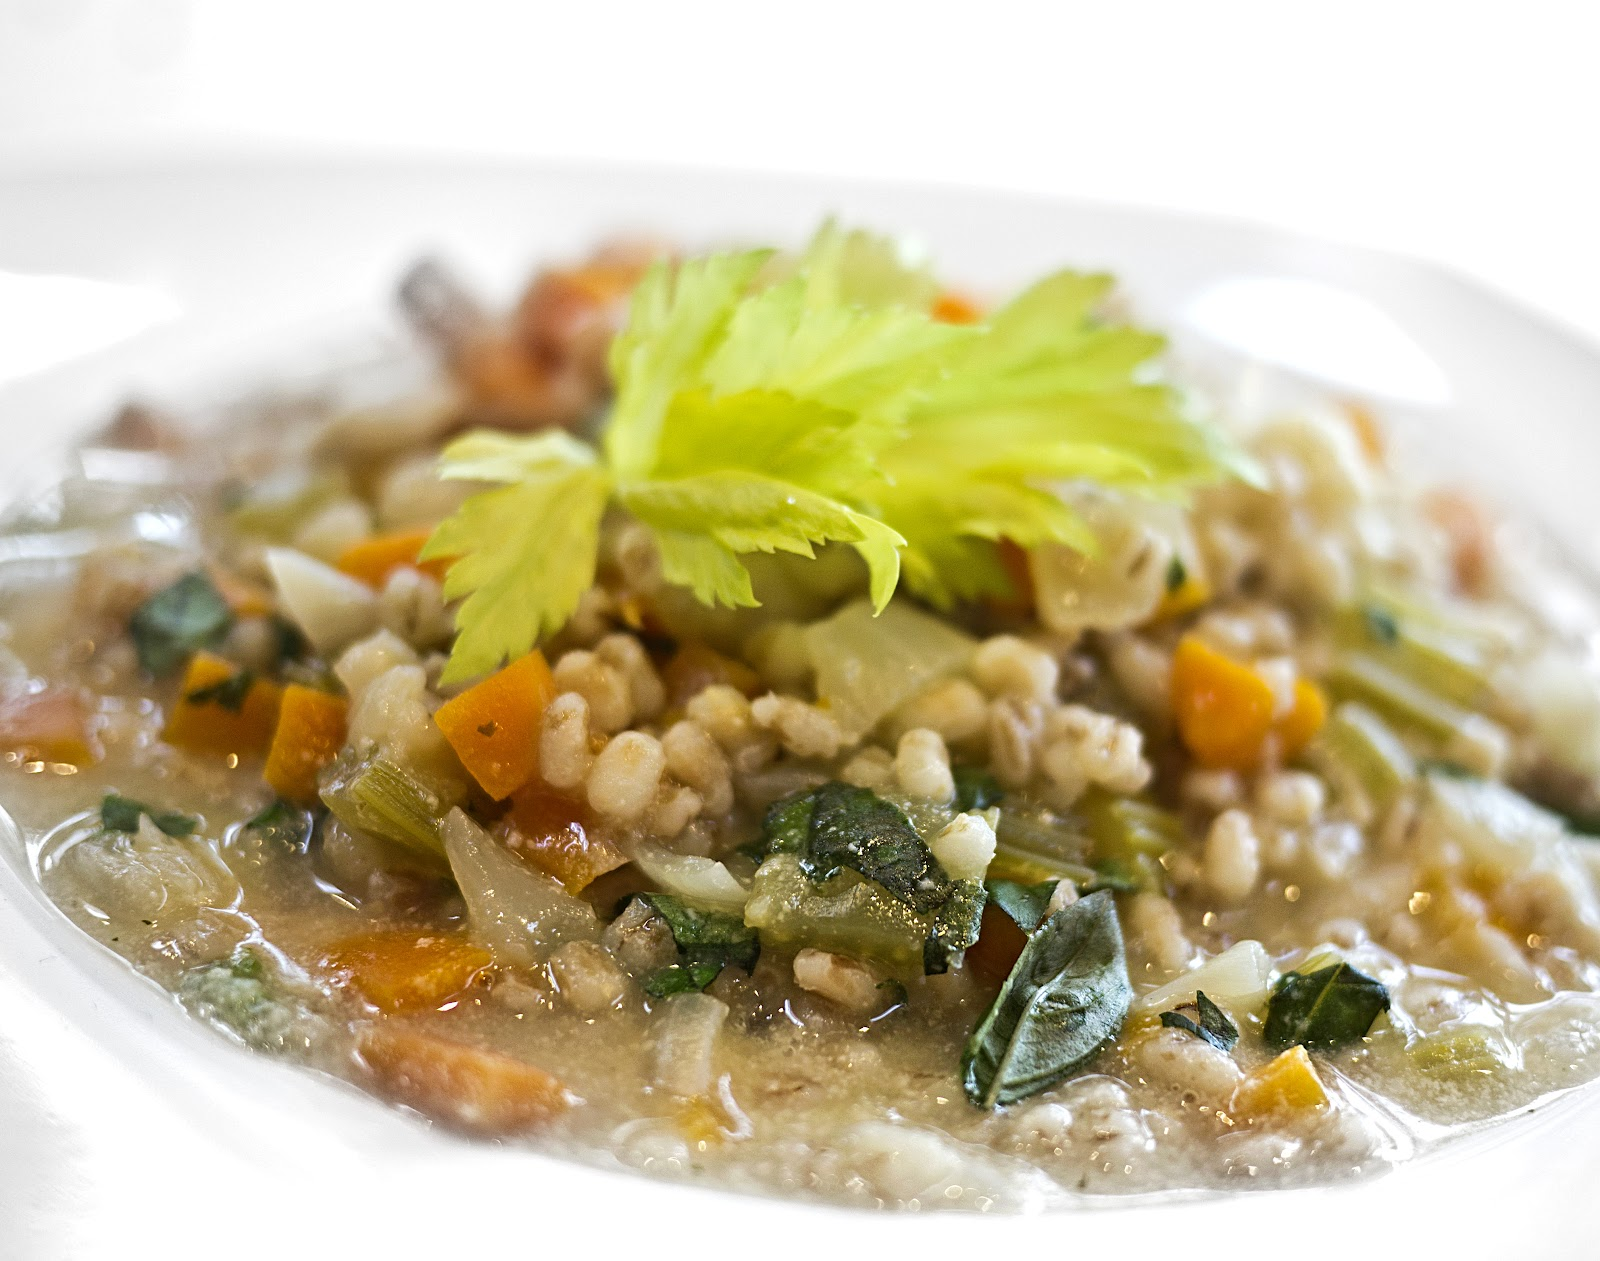 Barley'Risotto' with Carrot and Celery